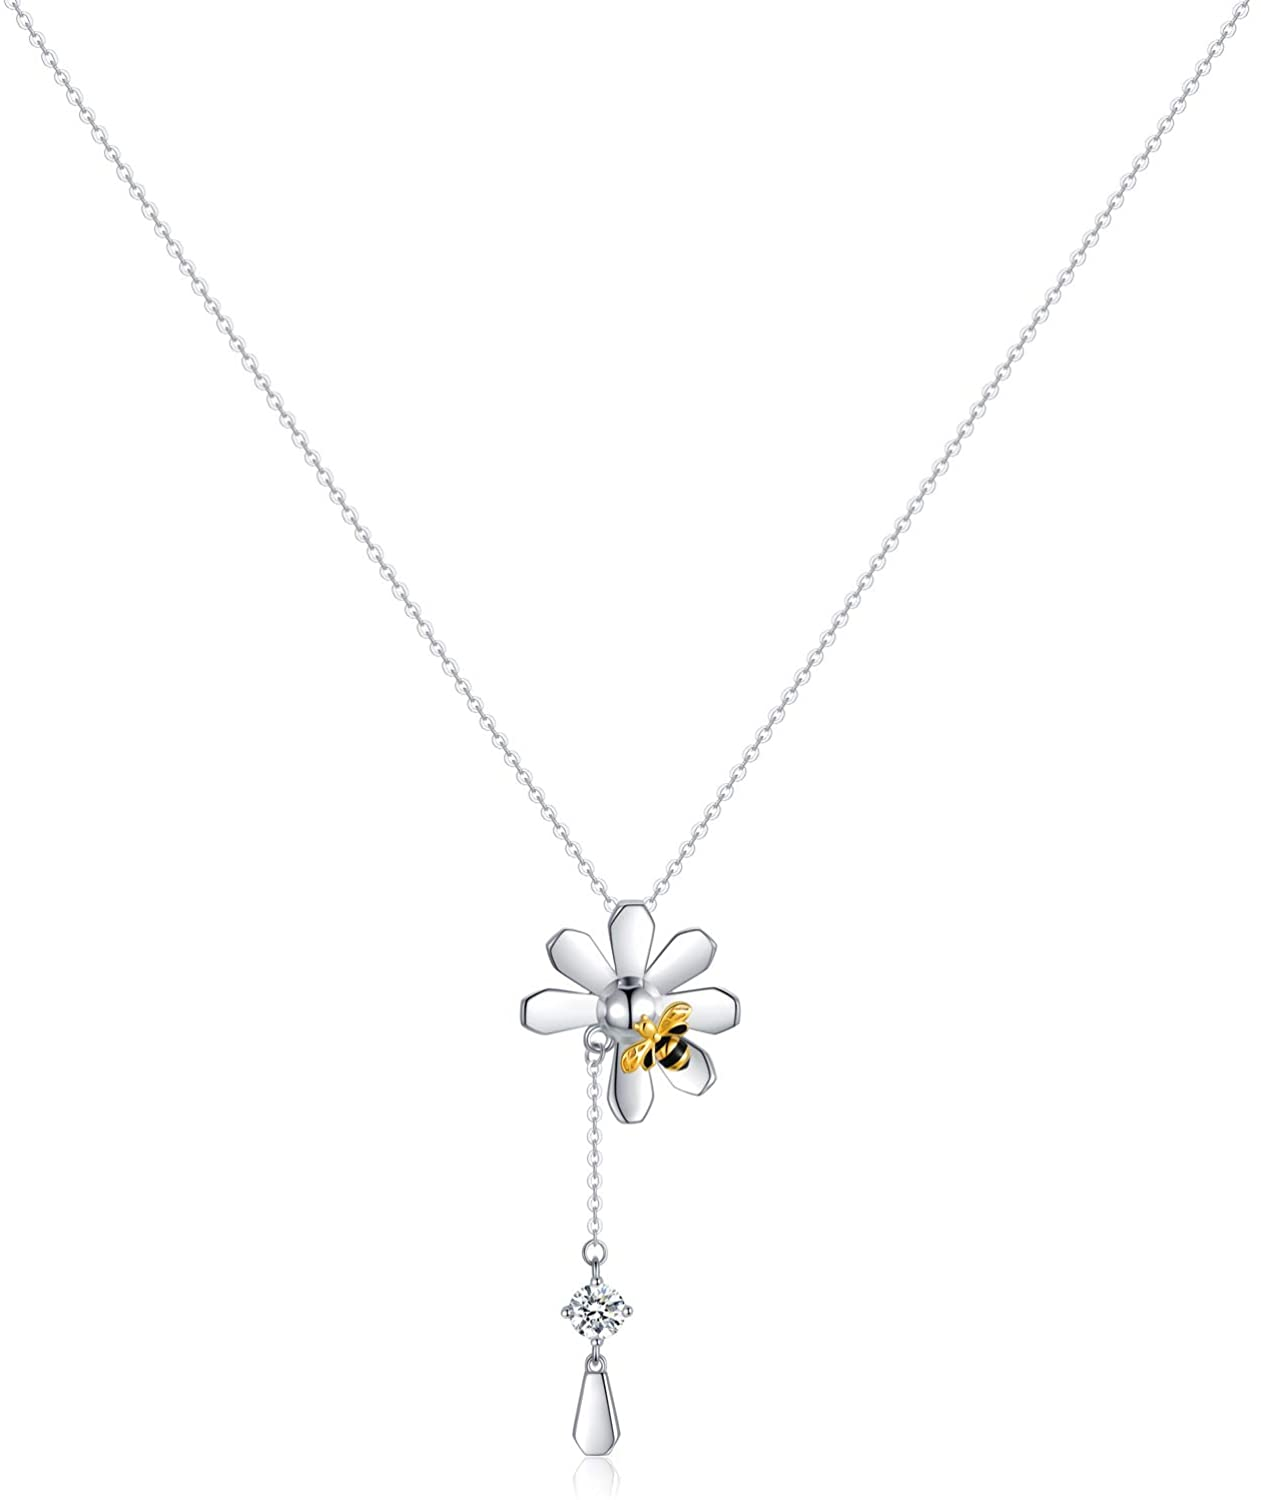 Y Necklace Sterling Silver Daisy Flower Bee Pendant Chain Cute Jewelry Gift for Women Daughter Best Friend 18+2 Inch